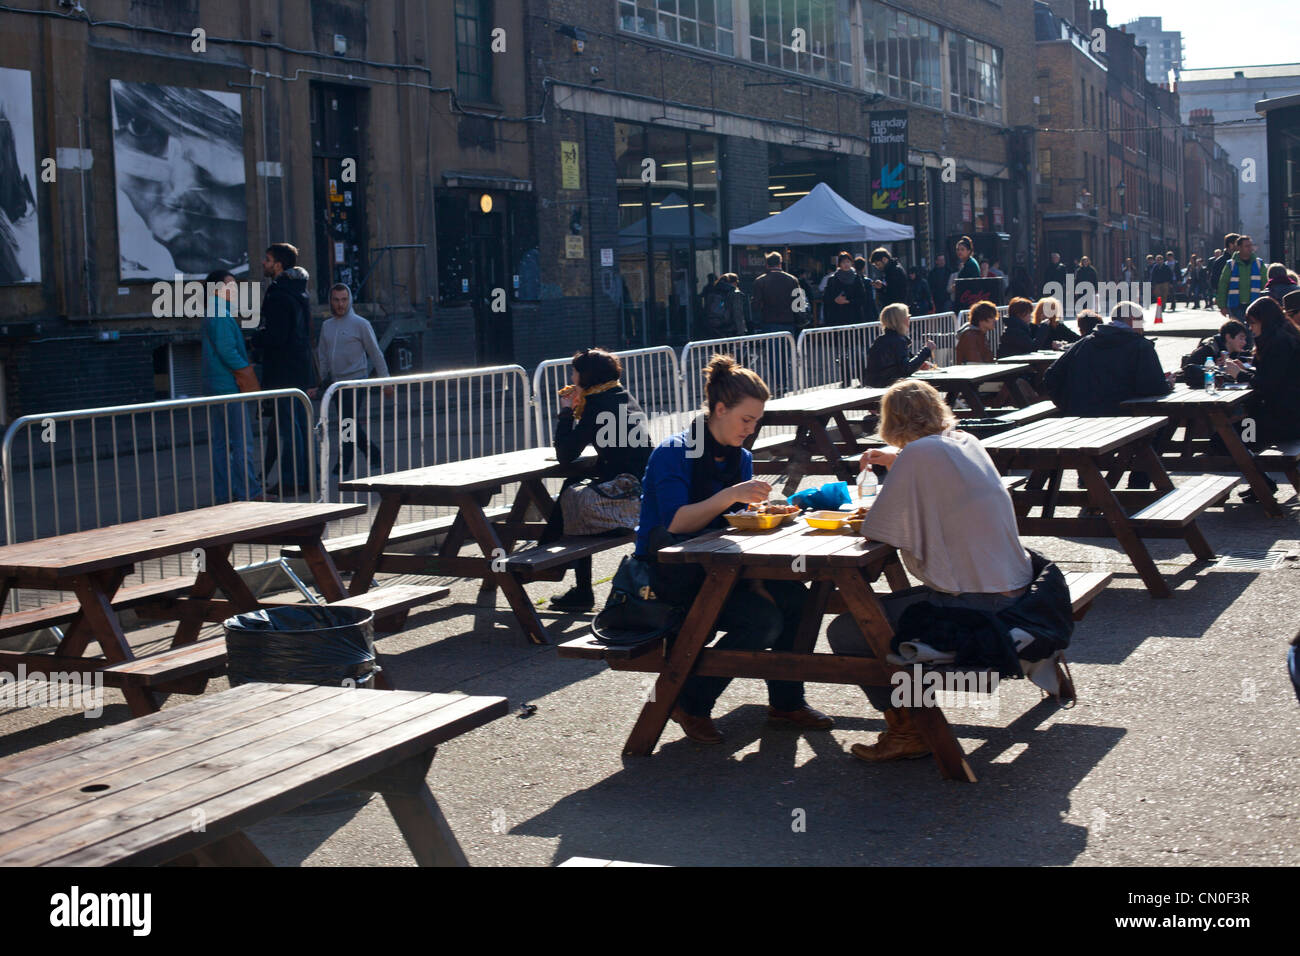 people sitting at picnic tables at an outdoor café in spitafield